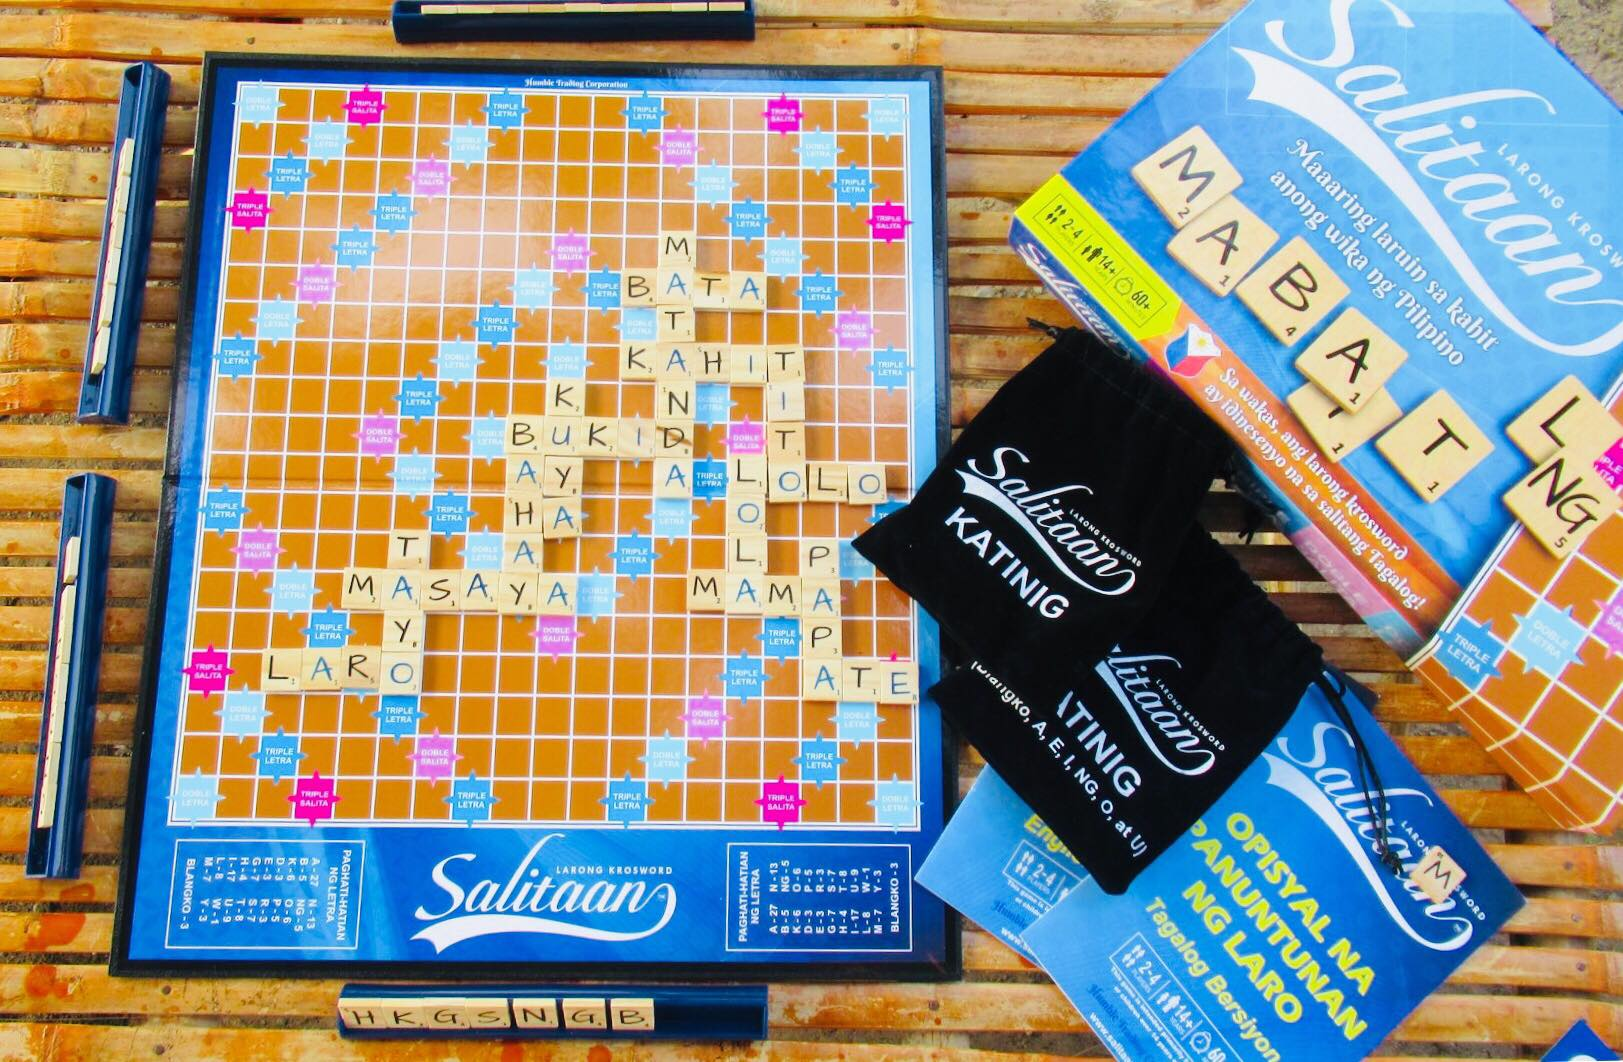 Salitaan Larong Krosword: Buy sell online Board Games with cheap ...